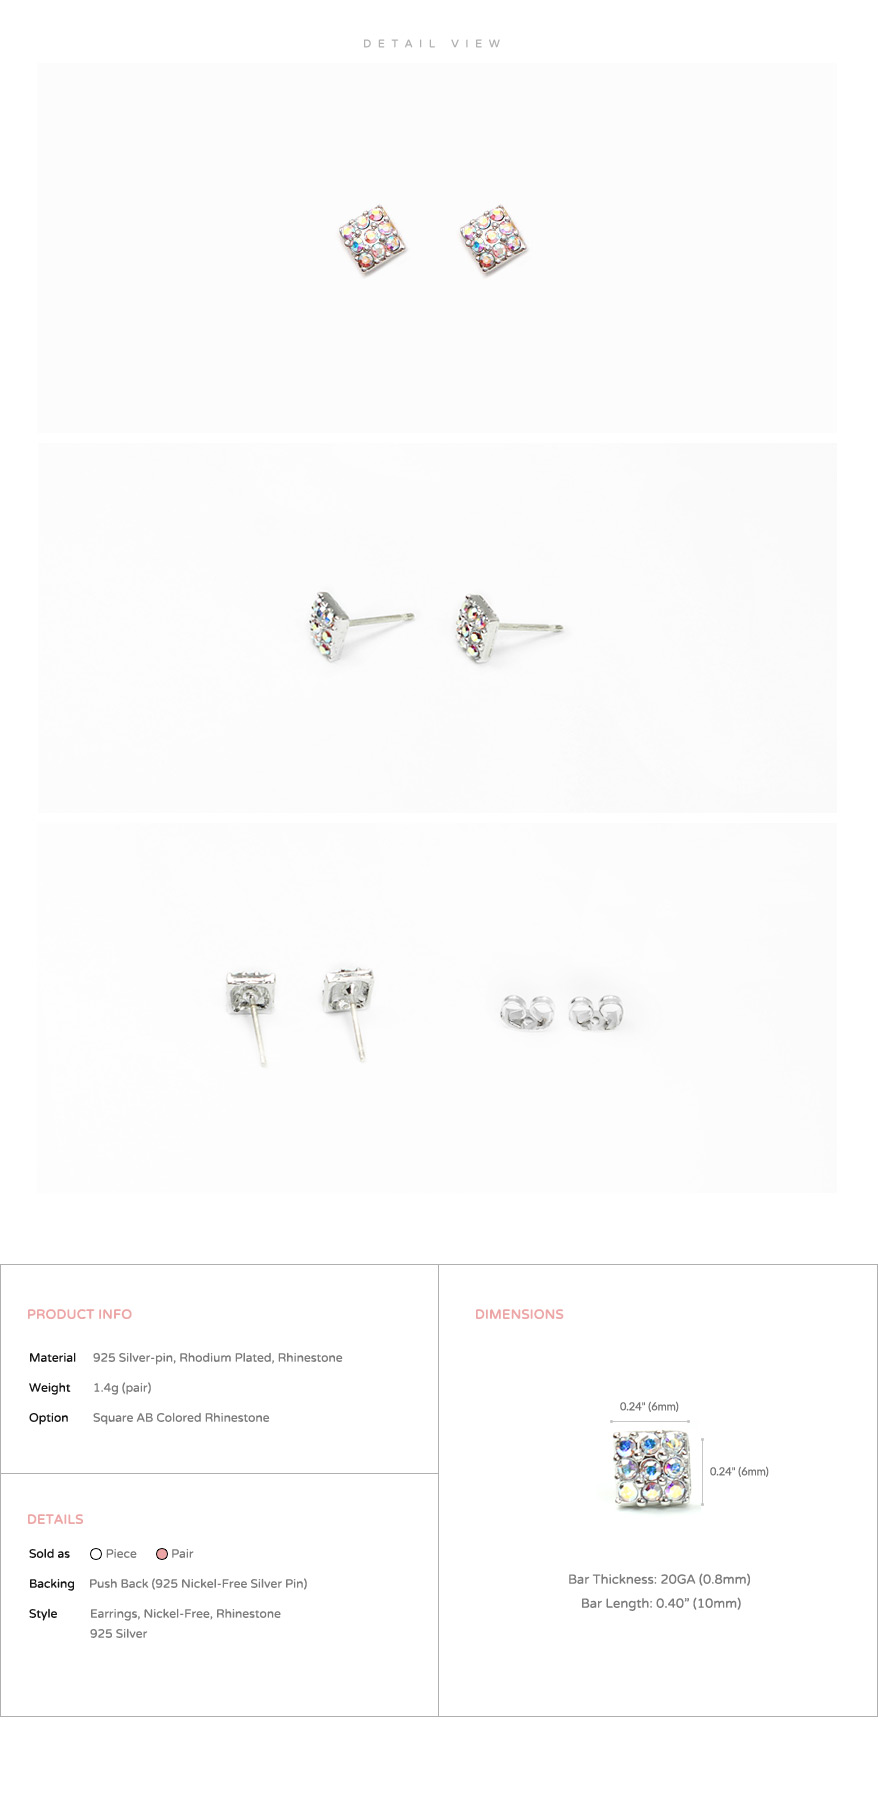 accessories_ear_stud_earrings_korean_asian-style_Rhinestone_925-silver_Rhodium-Plated_Nickel-Free_Square_AB_Aurora-Borealis_3